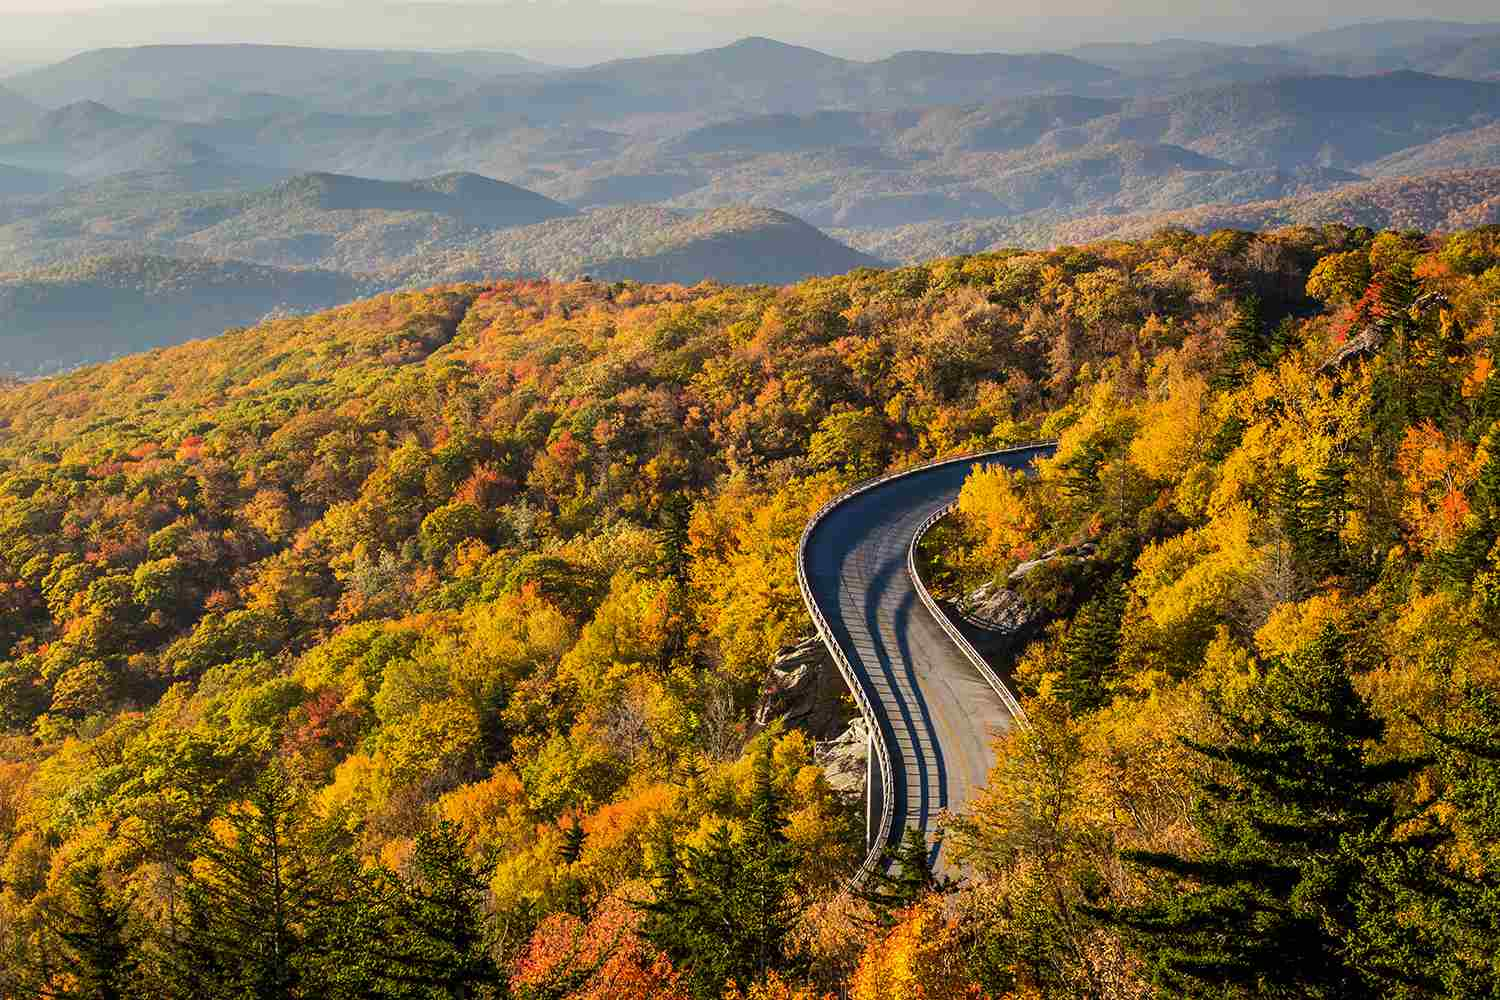 Unique viewpoint of the Linn cove viaduct at sunrise in Autumn on the Blue ridge Parkway, North Carolina, USA.